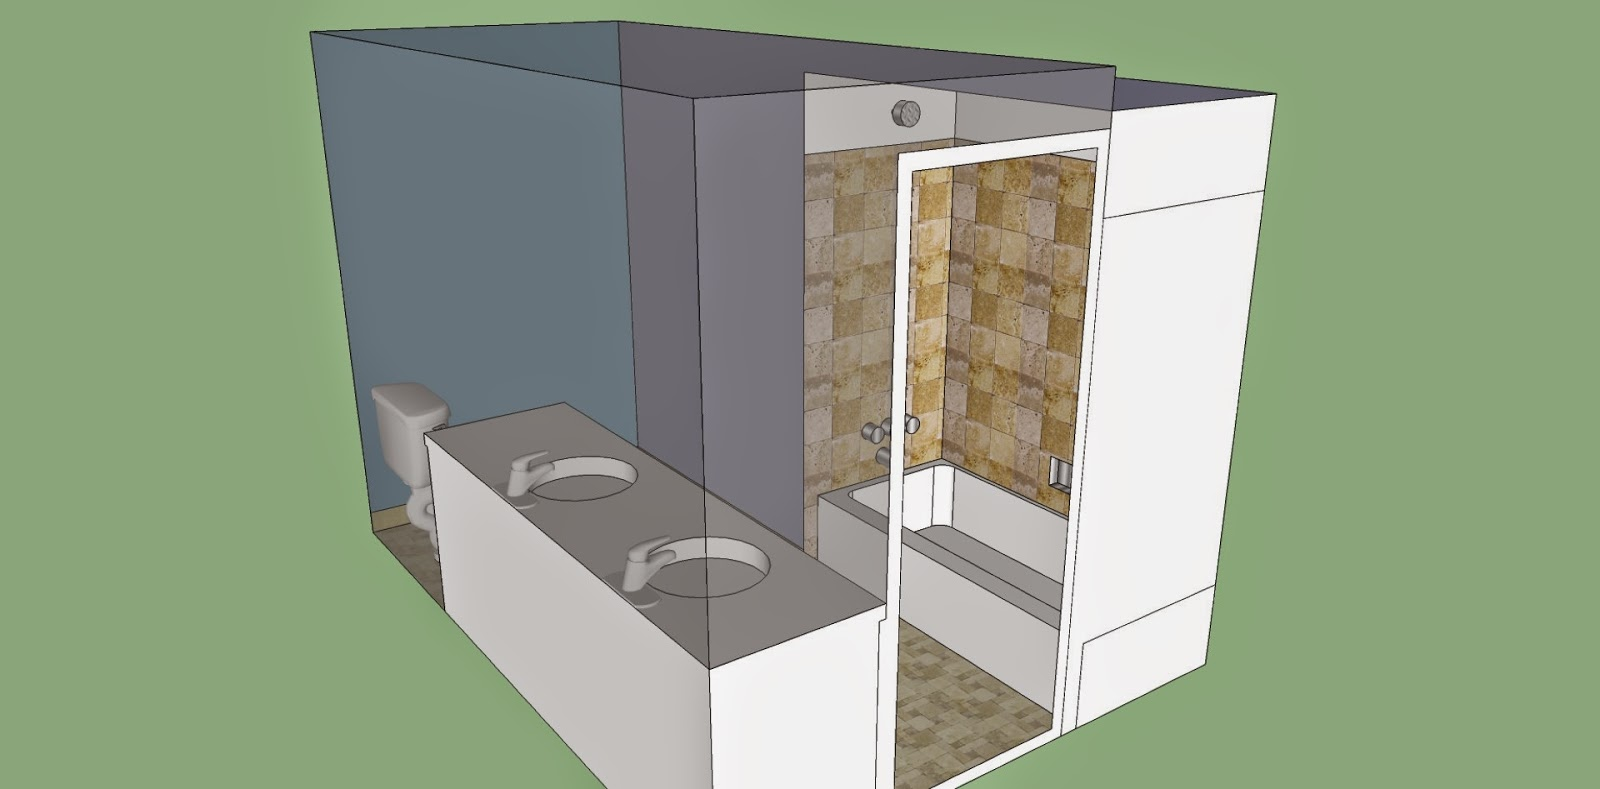 sketch of bathroom tile remodel, floor tile, shower, bath, baseboard